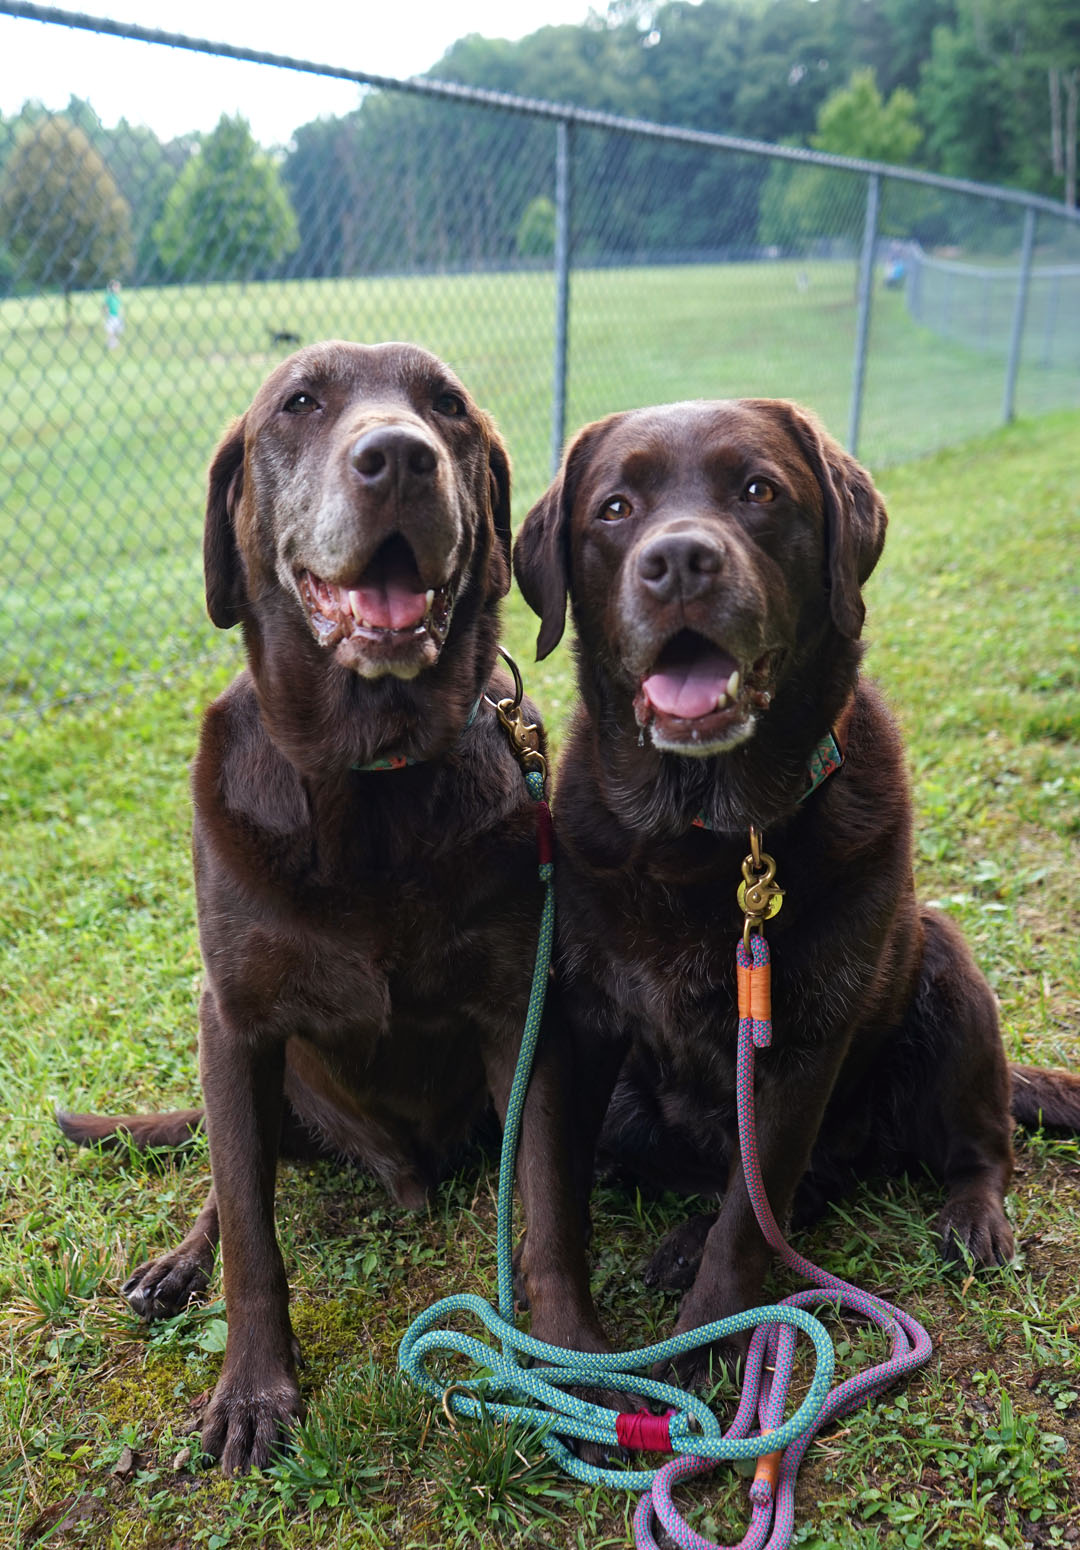 Prevent the spread of worms and parasites at the dog park